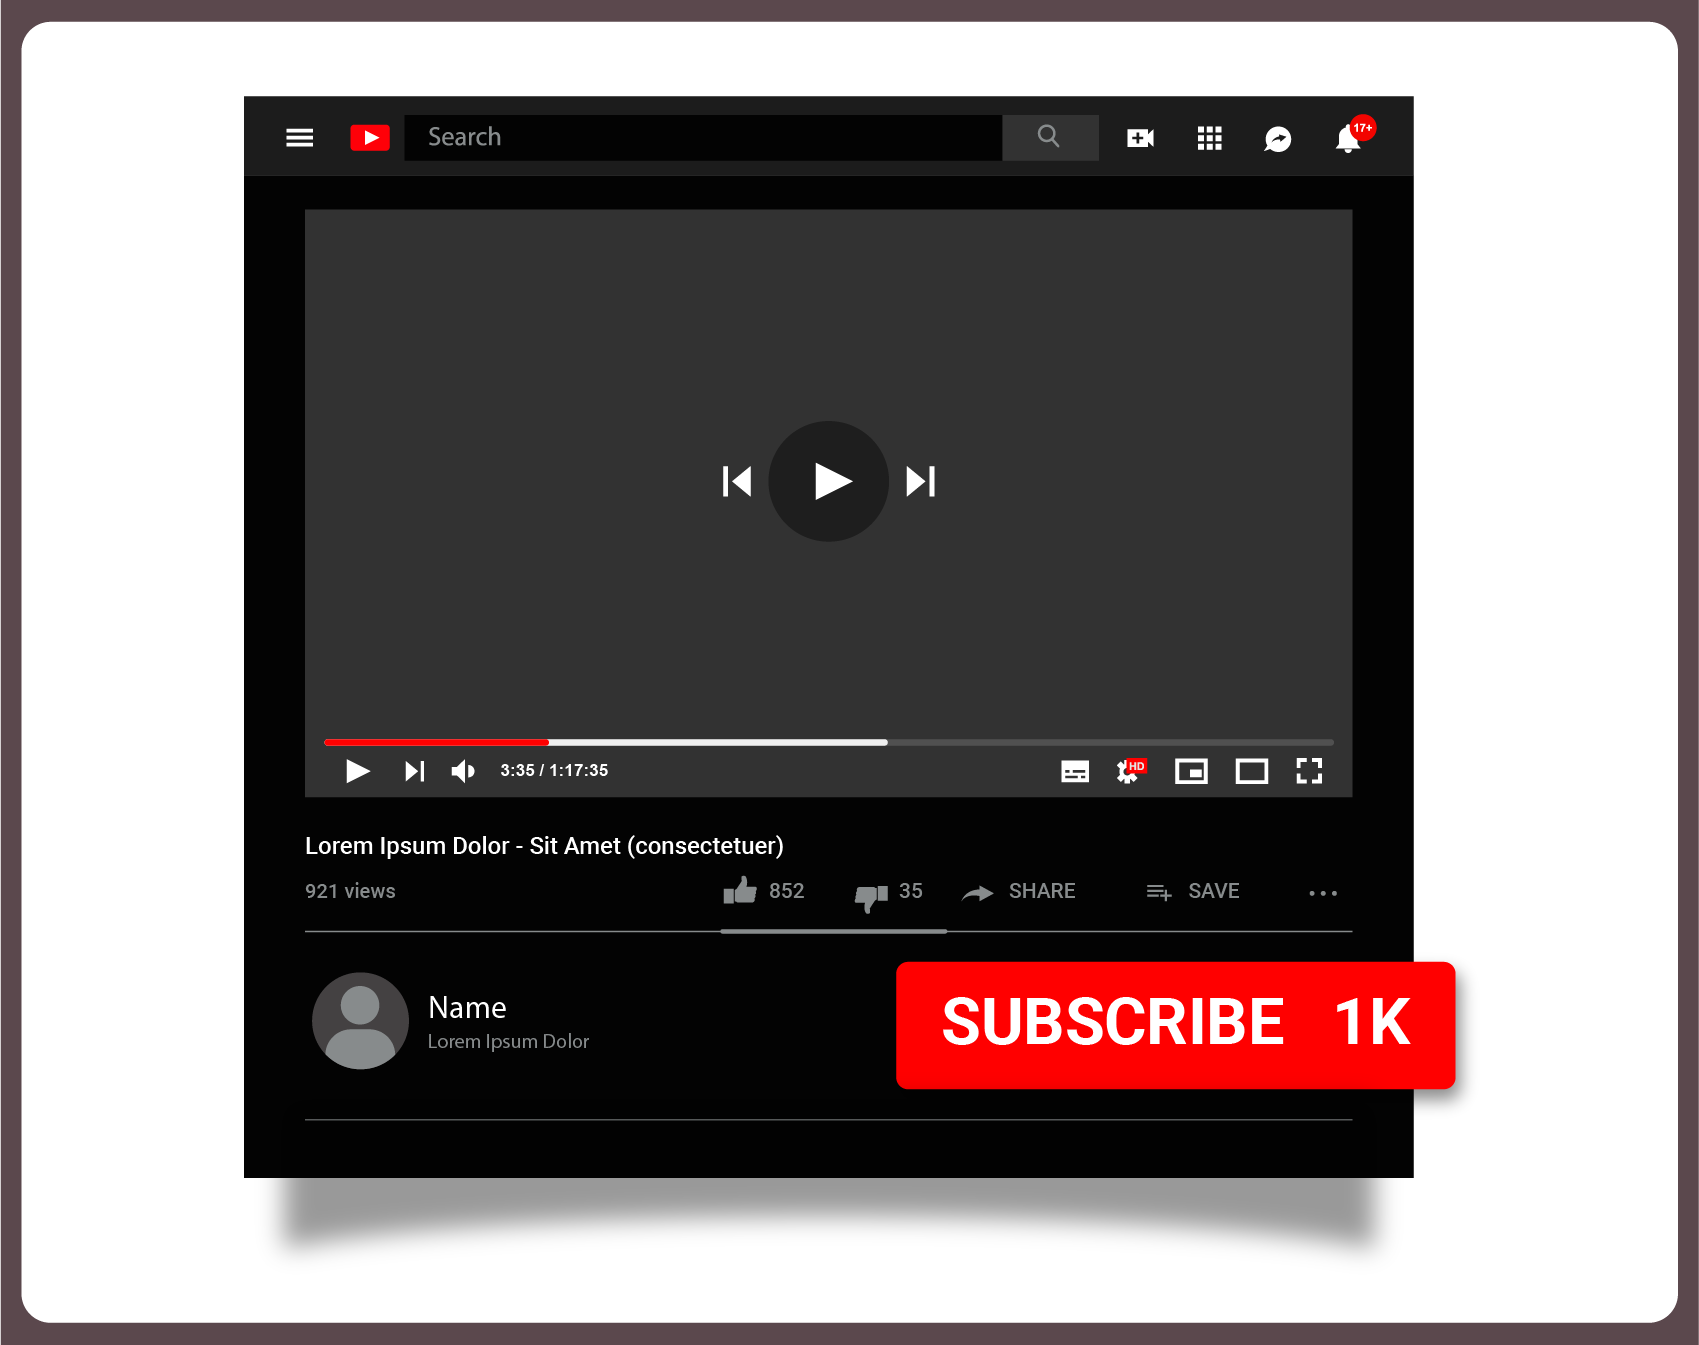 Image showing 1K subscribers